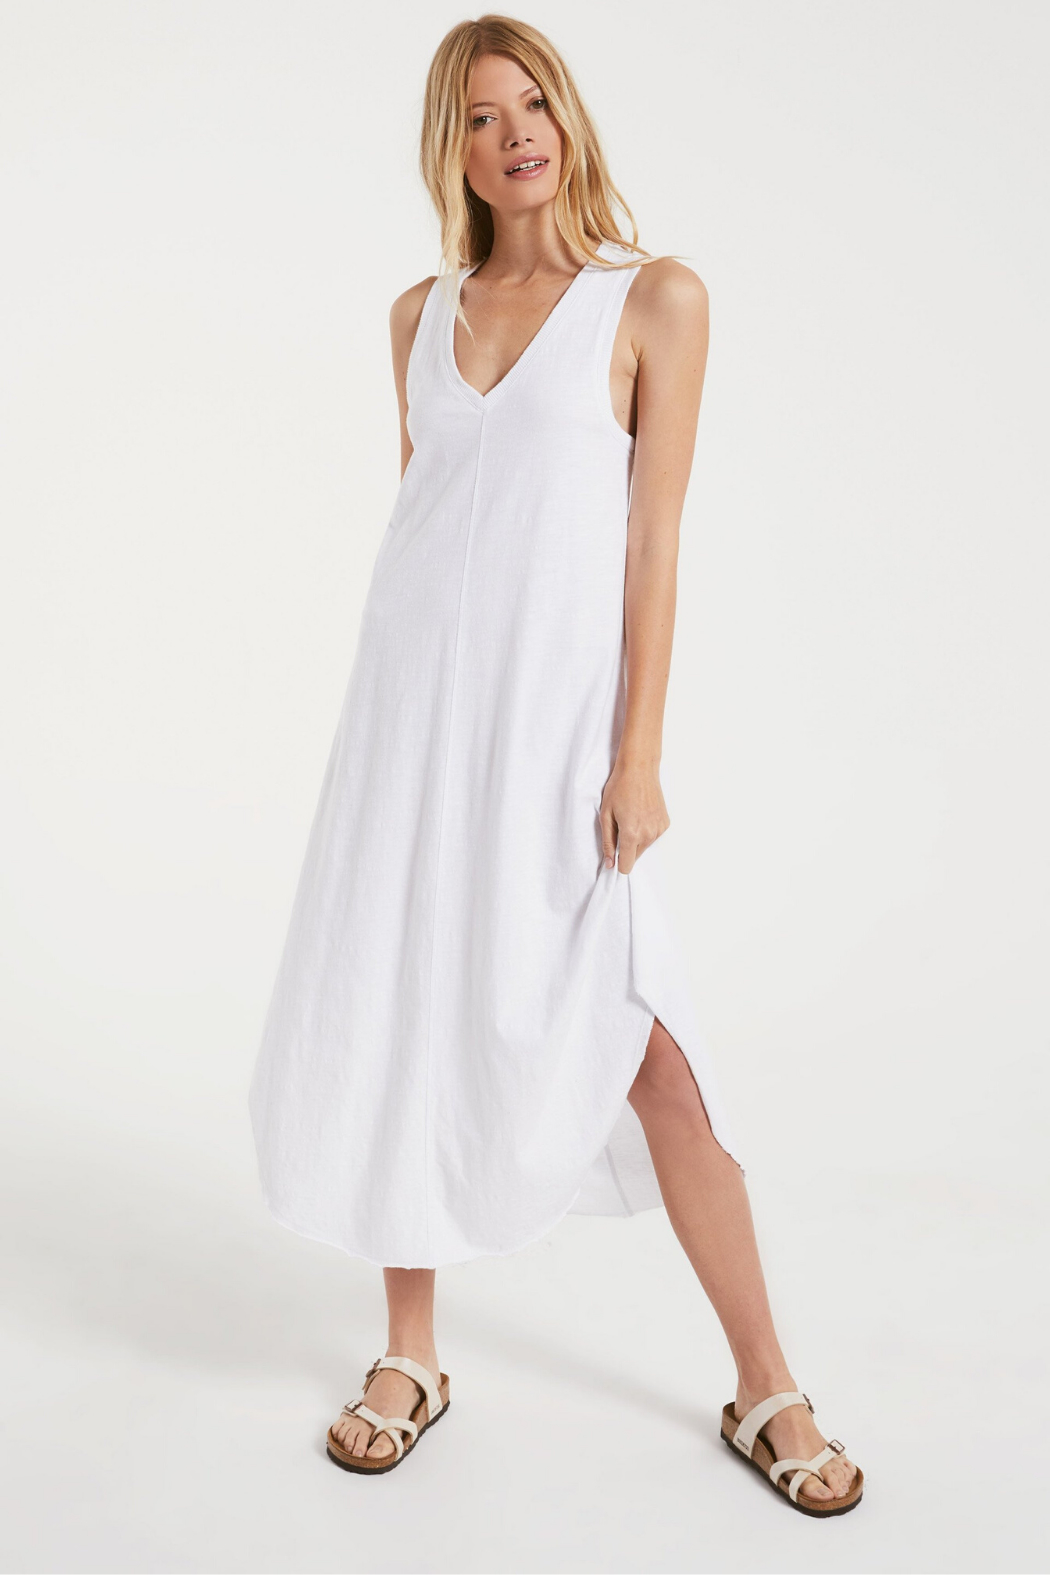 z supply Reverie Midi Dress - Back Cropped Image